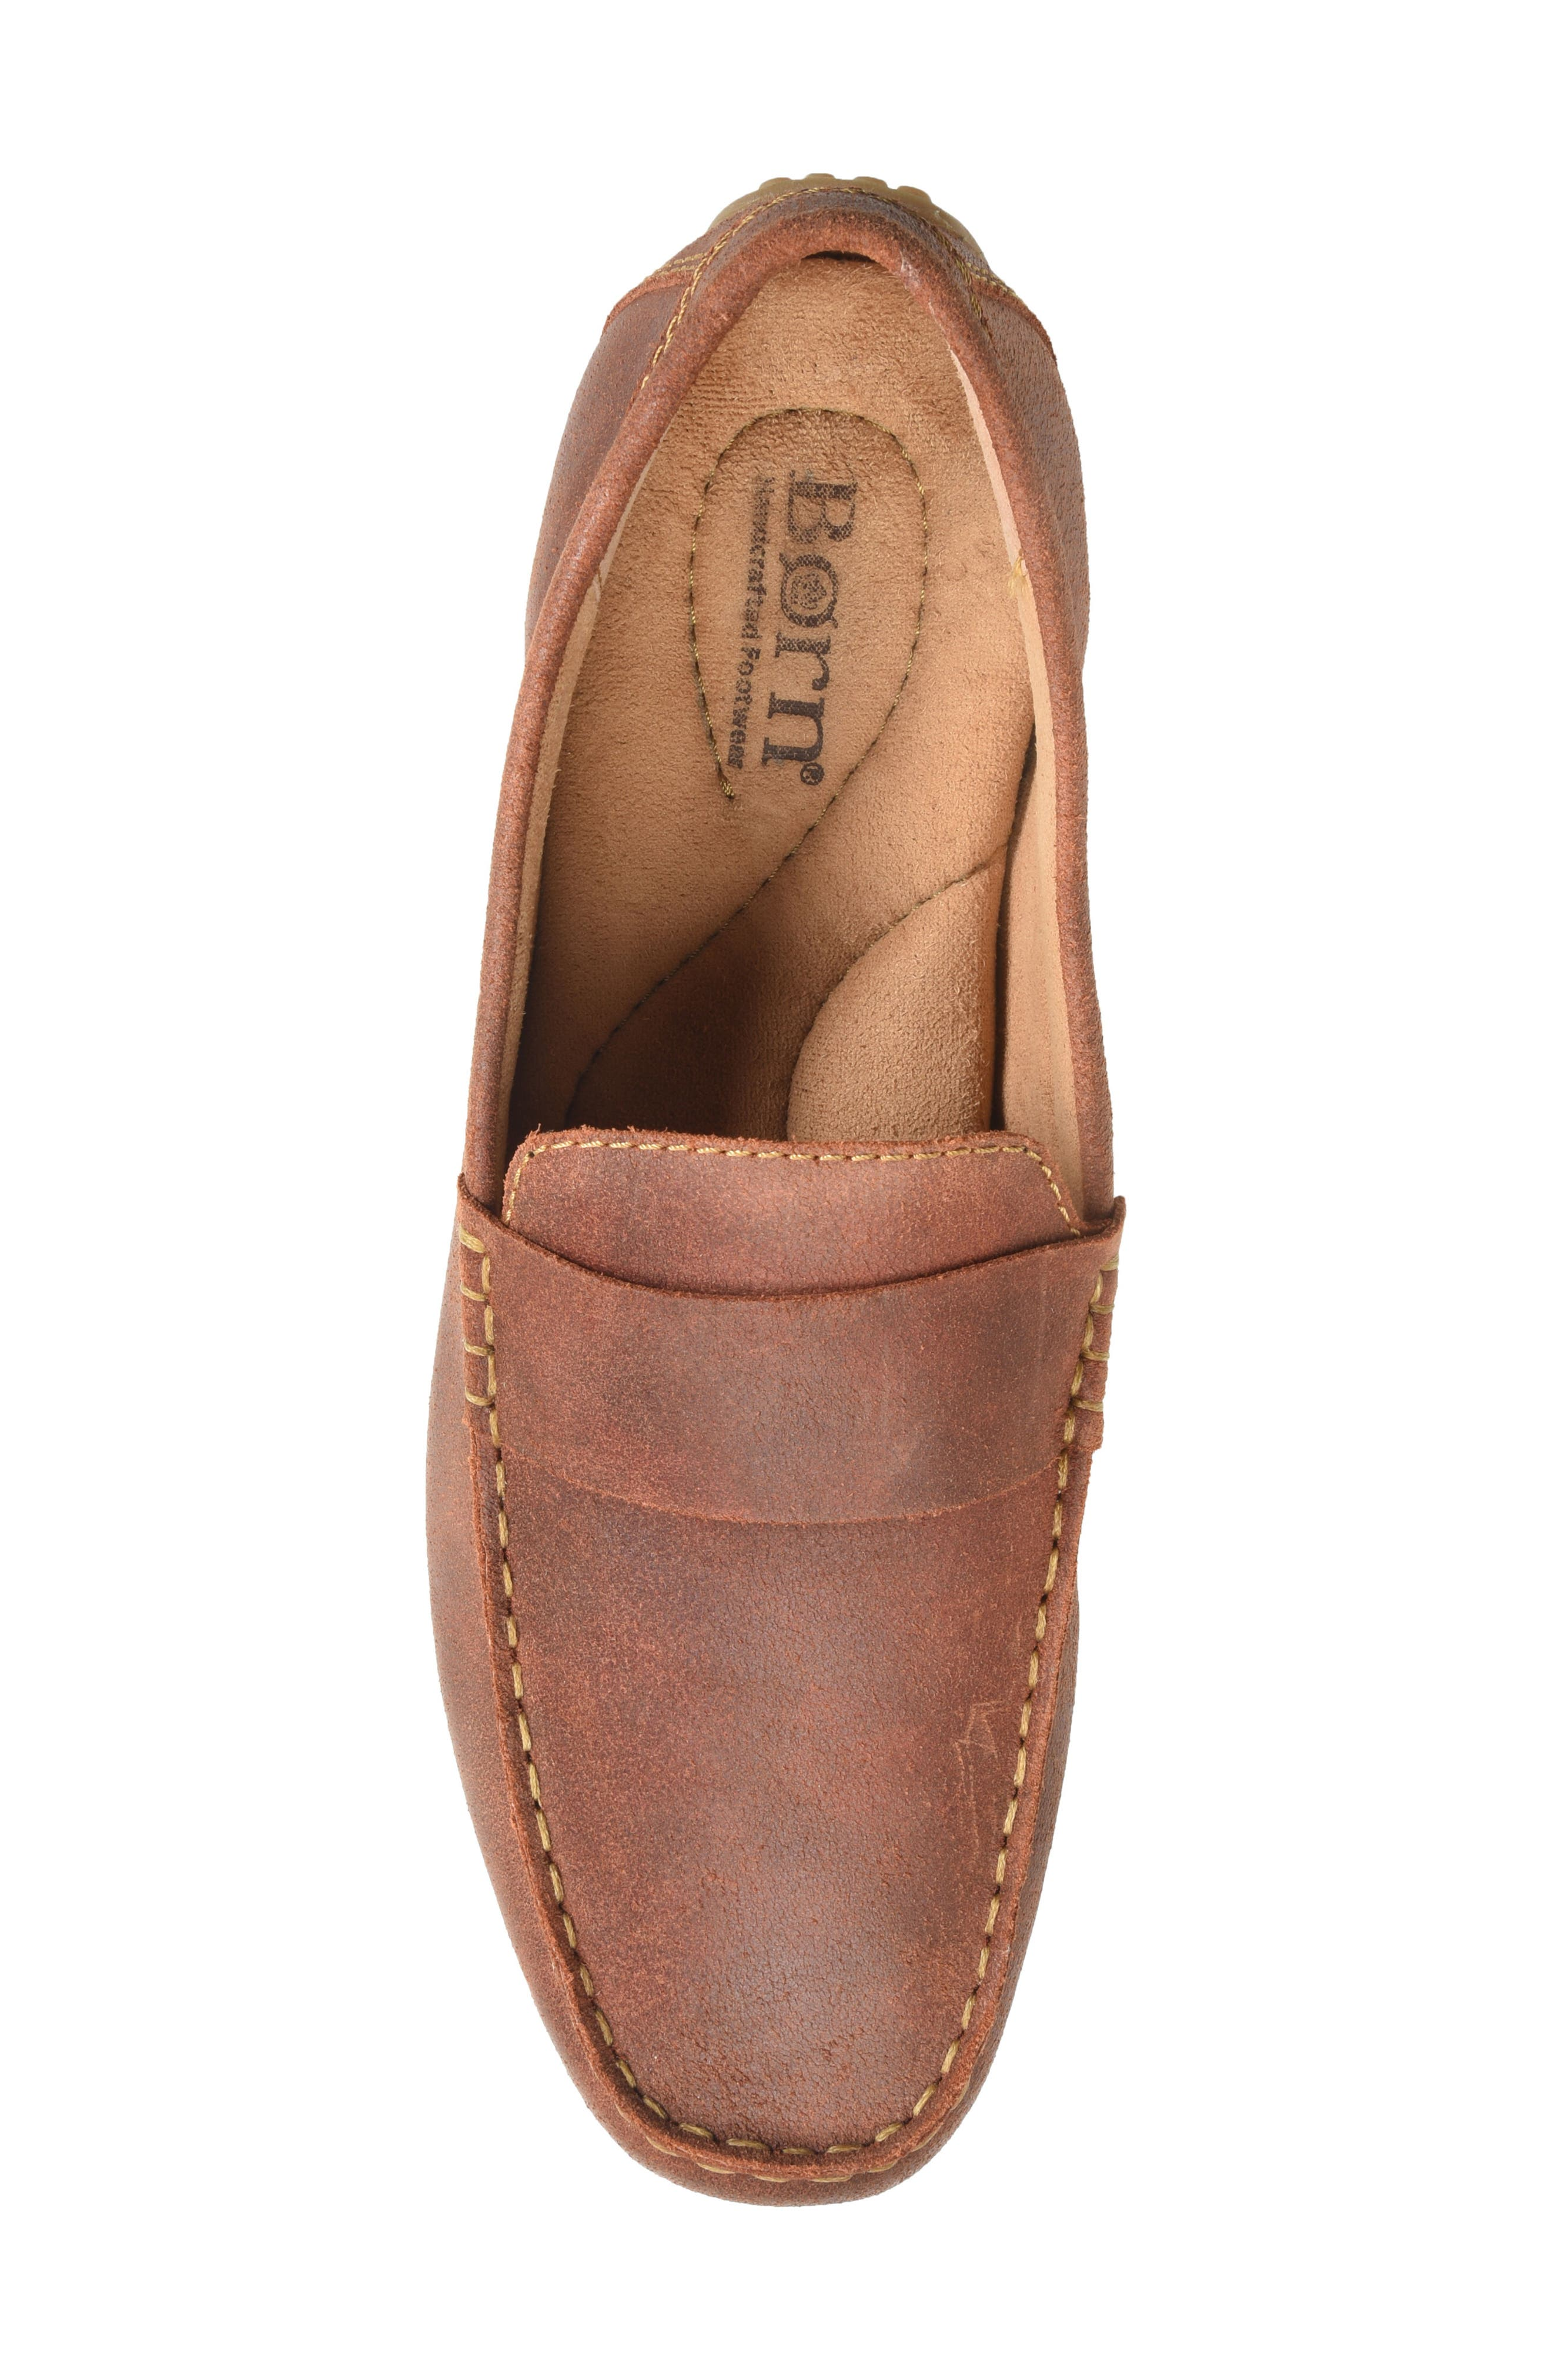 Ratner Driving Loafer,                             Alternate thumbnail 4, color,                             Rust Leather